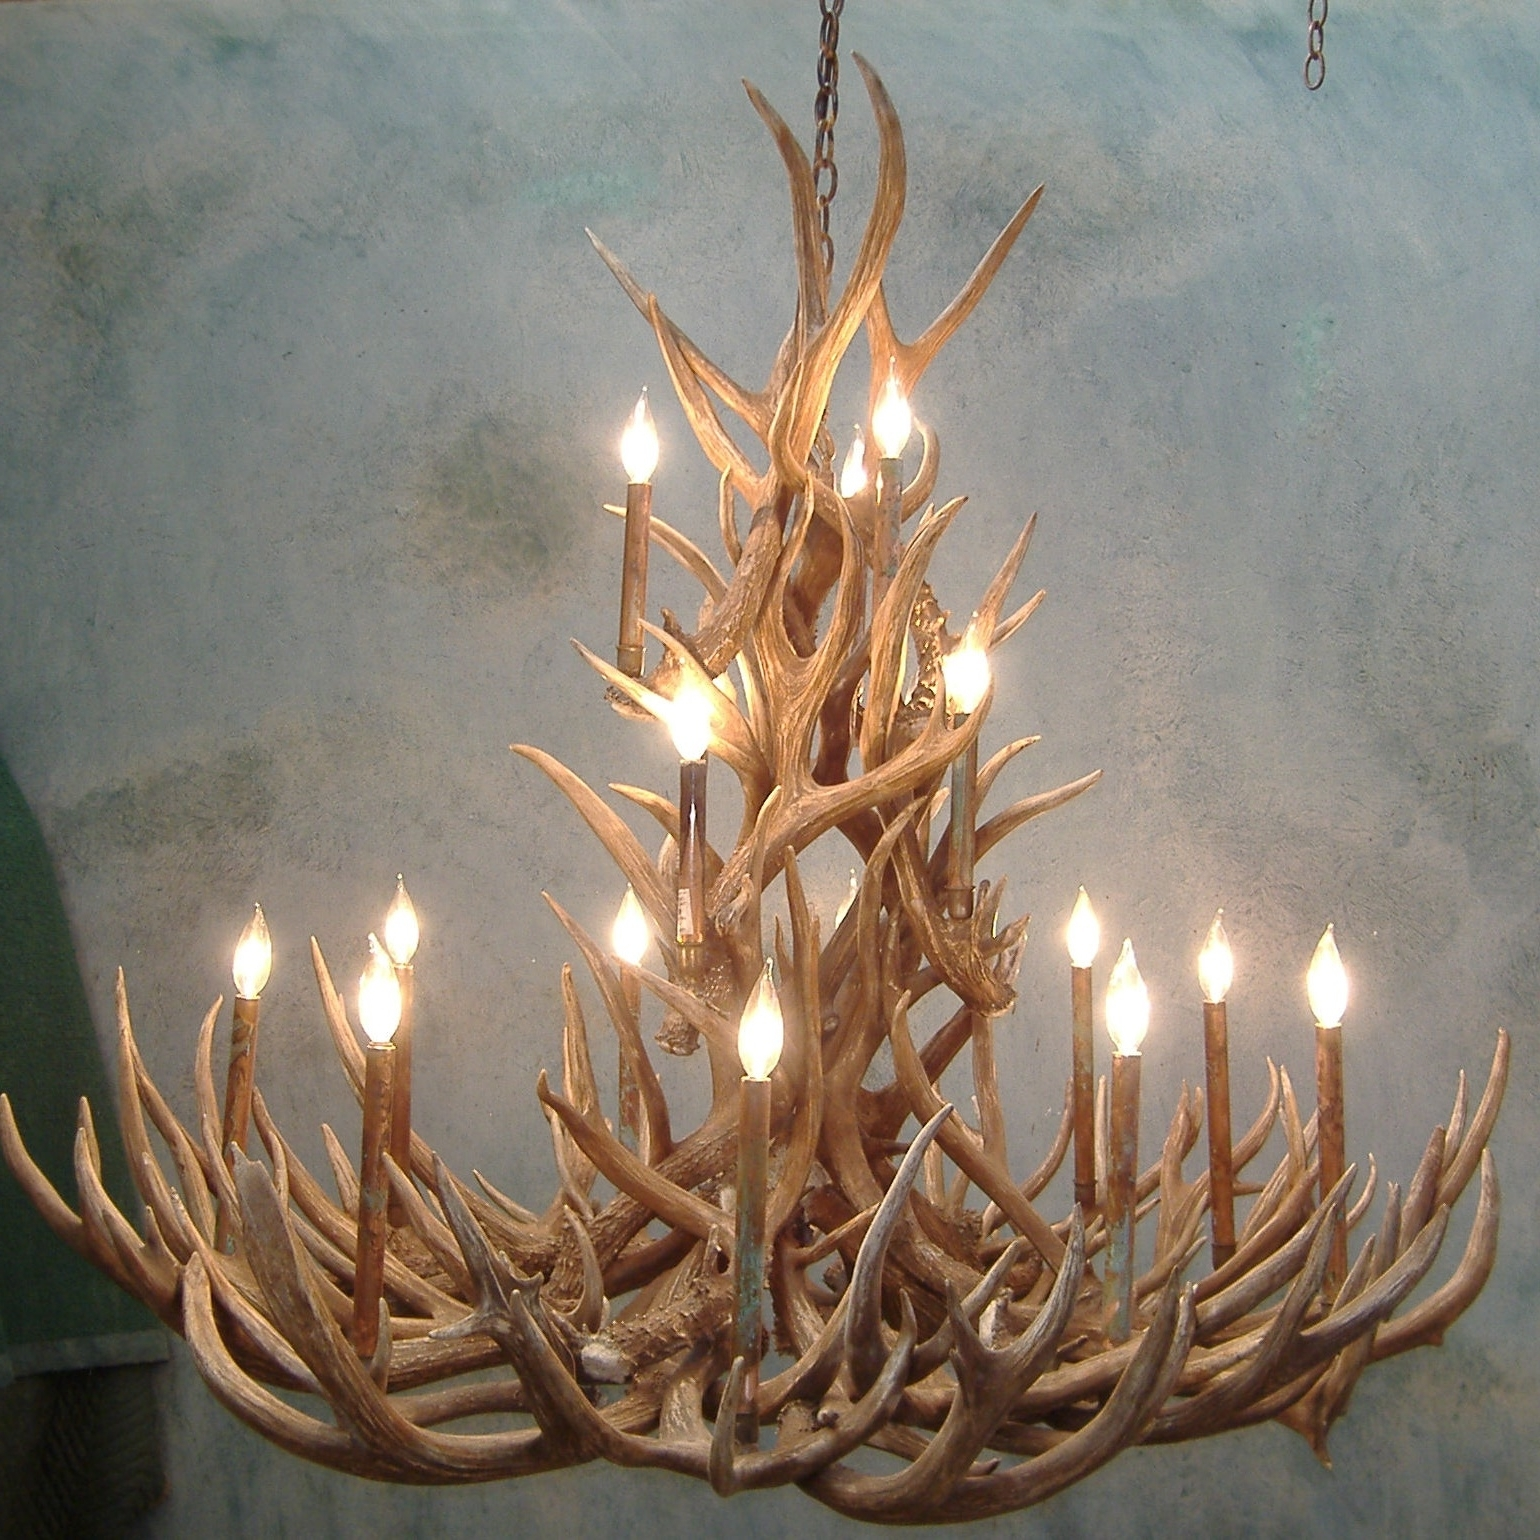 Spruce Mule Deer Antler Chandelier Pertaining To Fashionable Antler Chandelier (View 11 of 15)